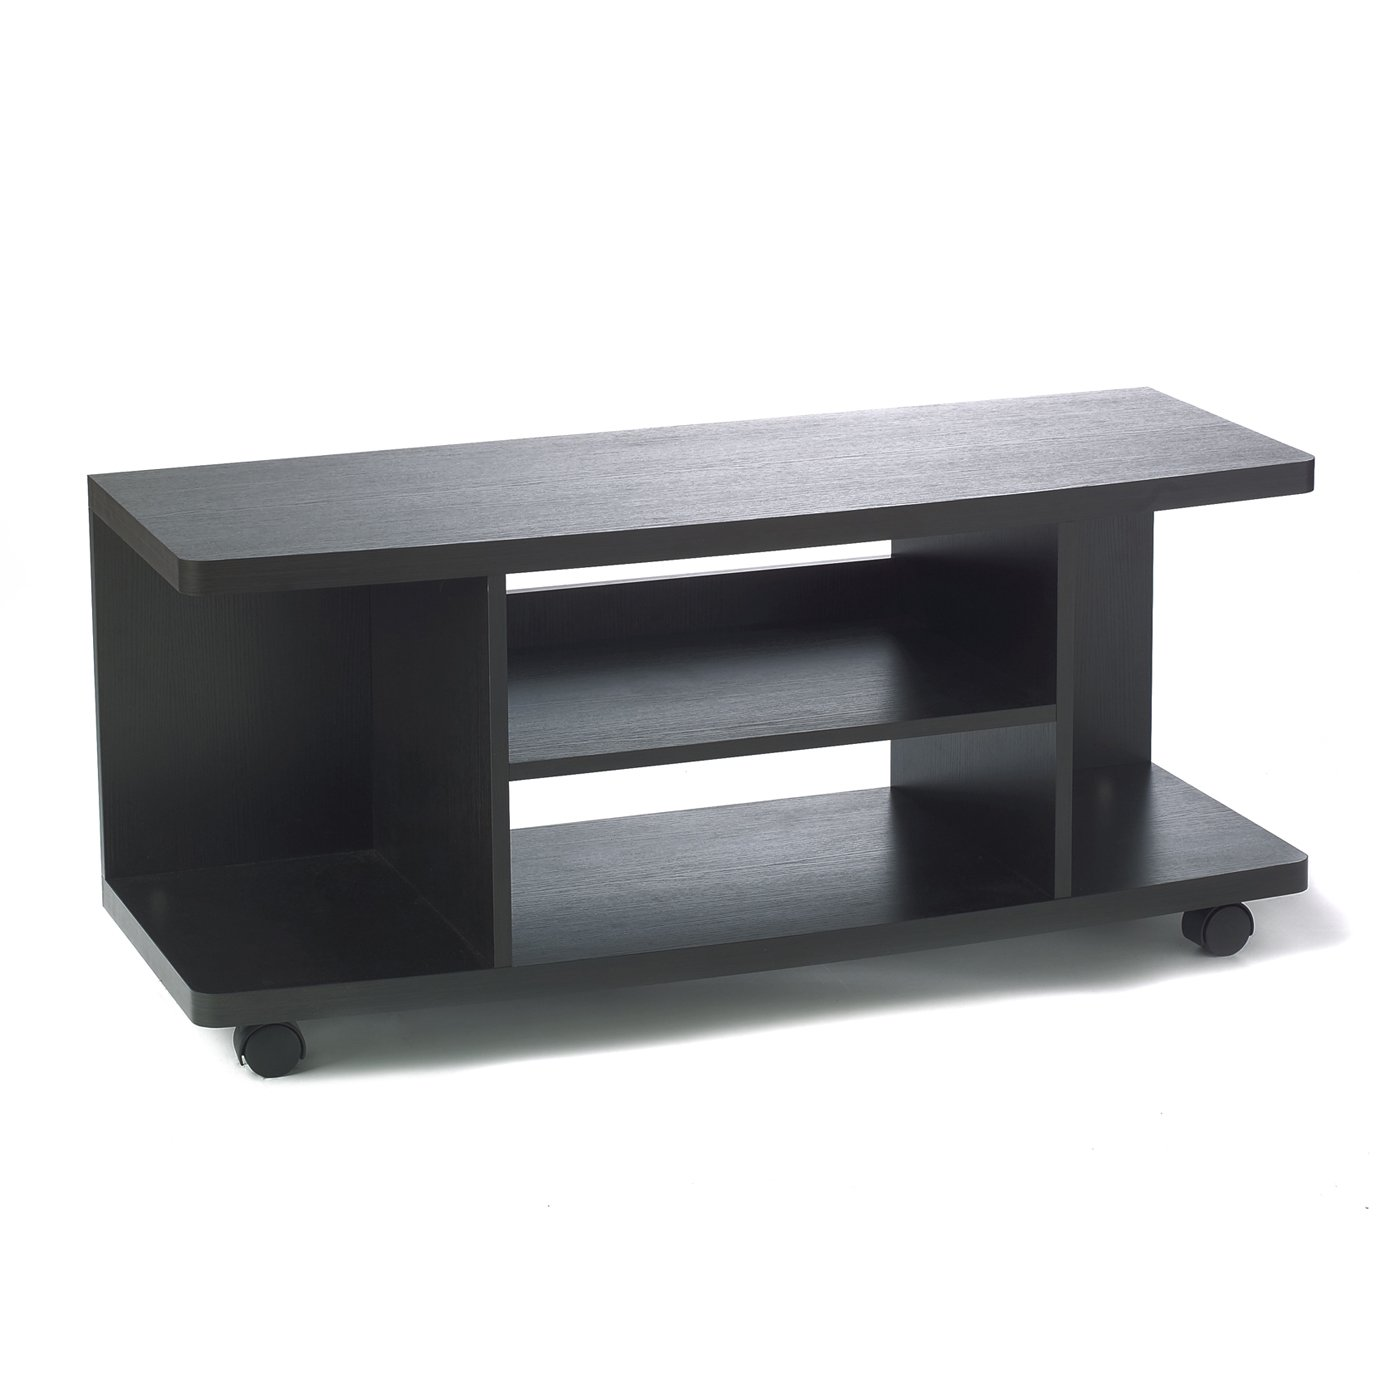 Northfield TV Stand.jpg